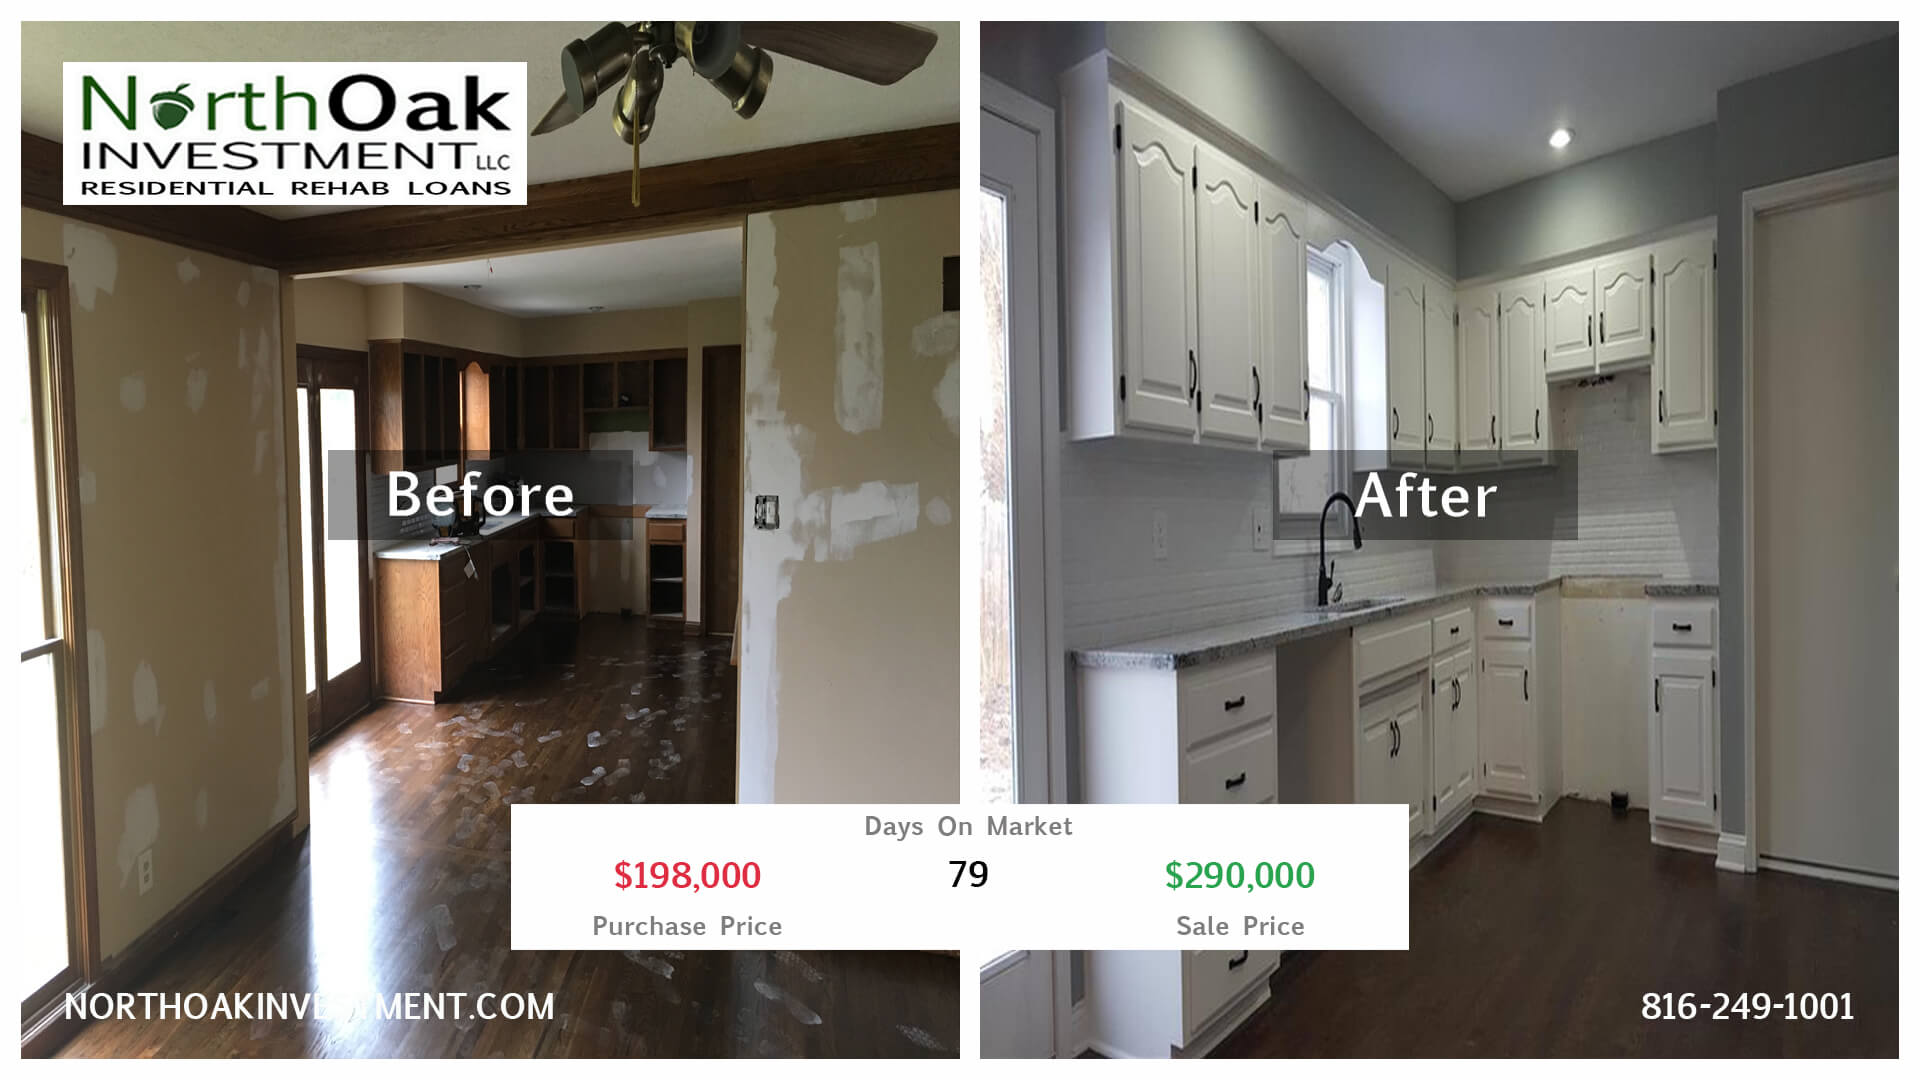 Before and After Real Estate Rehab